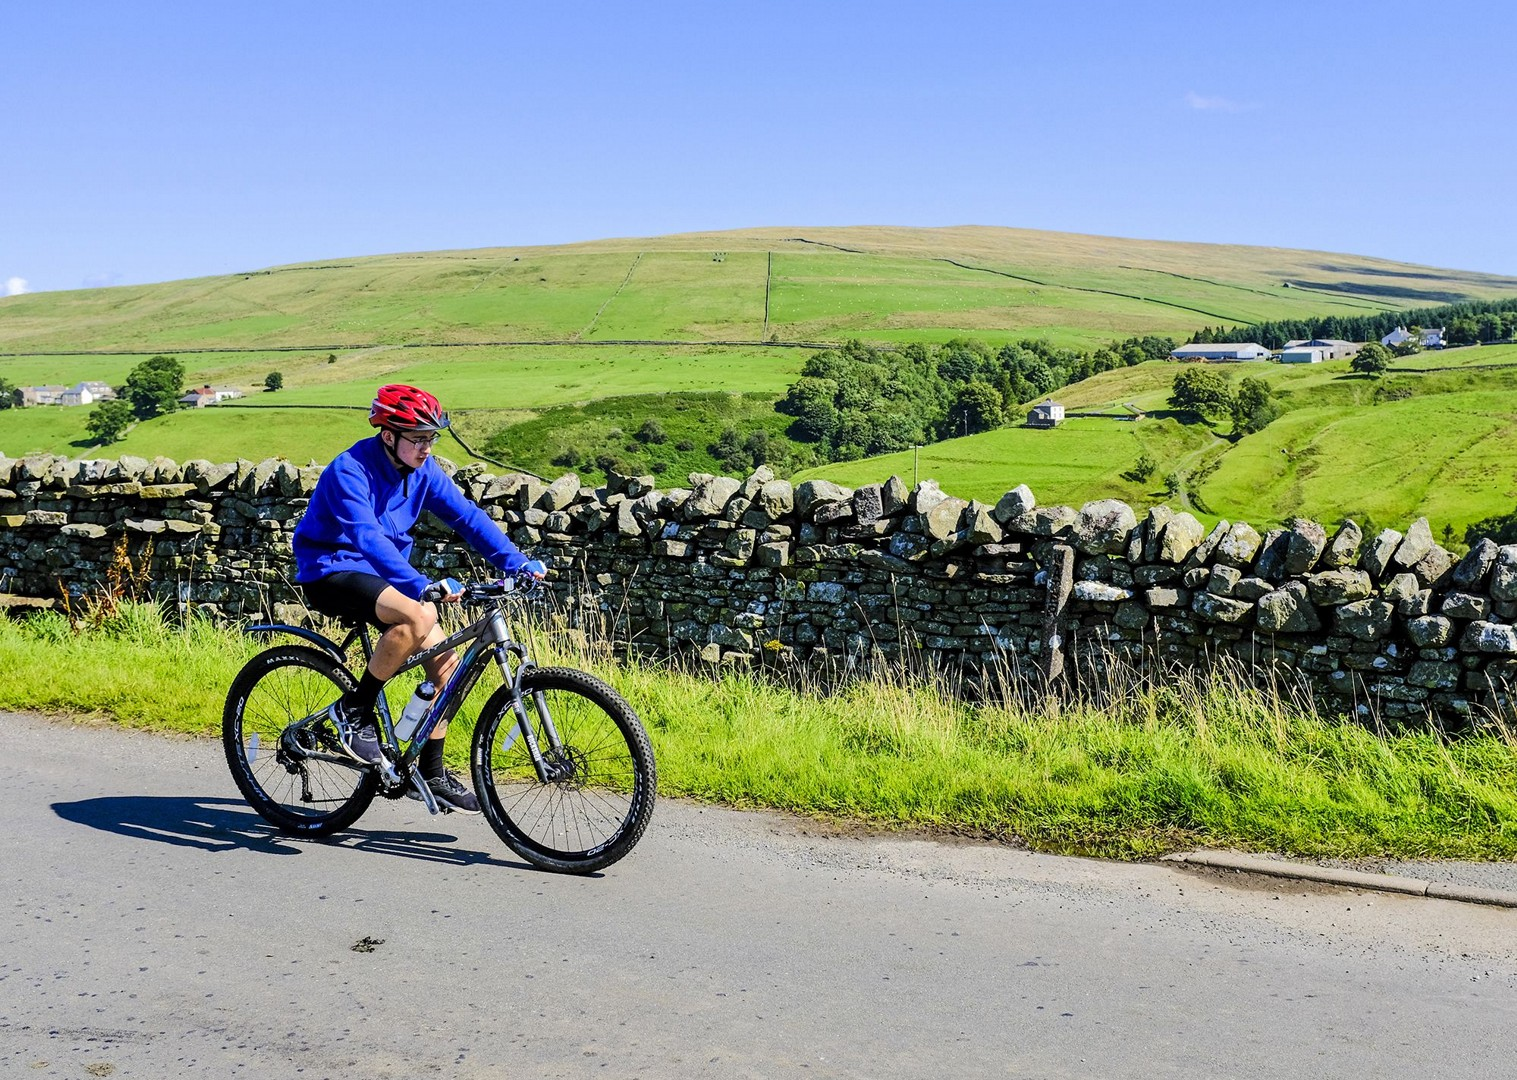 traditional-british-fields-with-friends-and-family-trip-cycling-holiday.jpg - UK - C2C - Coast to Coast 5 Days Cycling - Self-Guided Leisure Cycling Holiday - Leisure Cycling